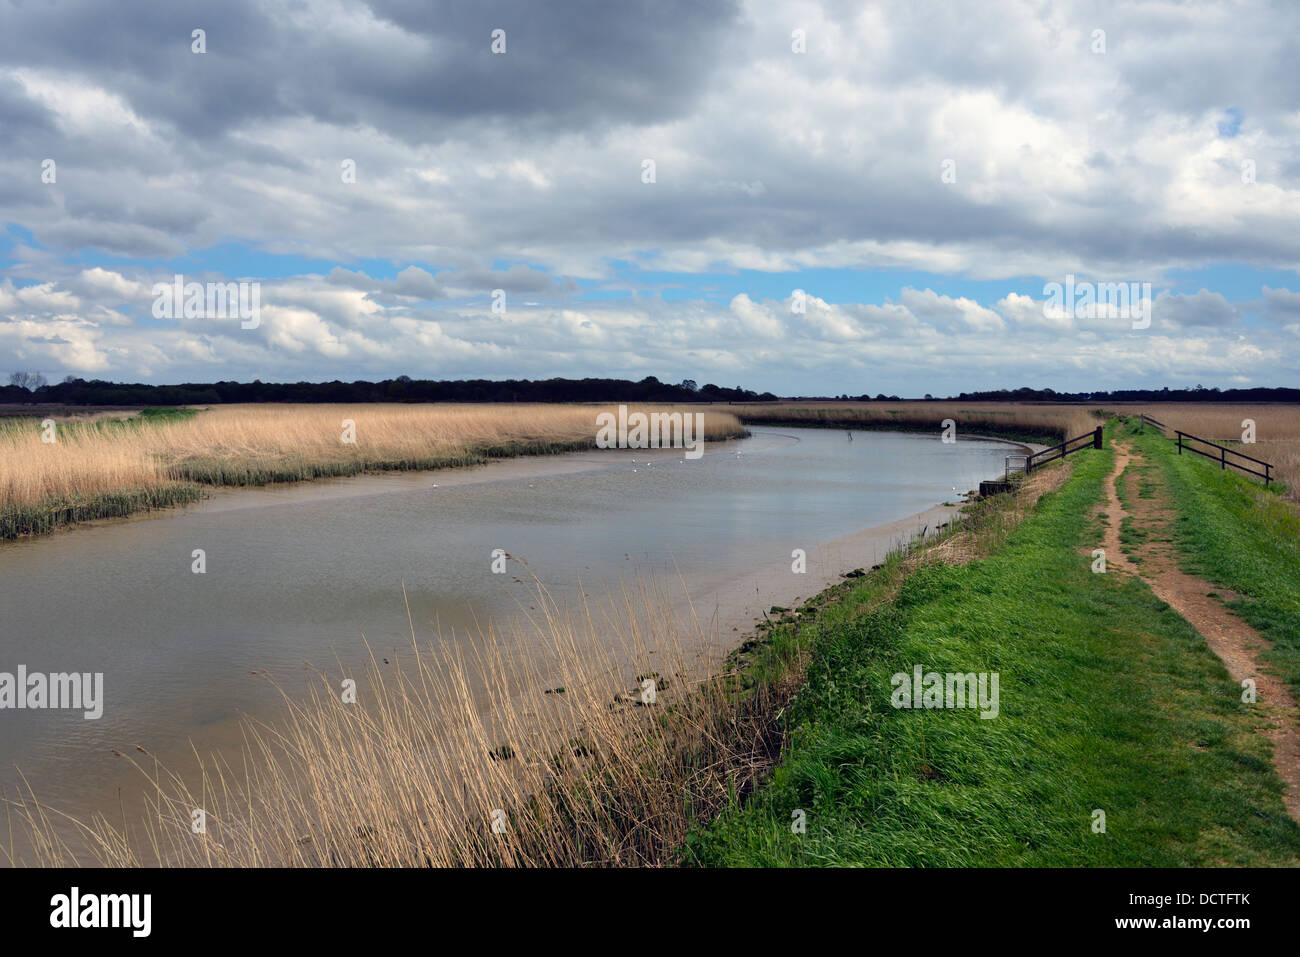 the-river-alde-at-snape-maltings-suffolk-england-united-kingdom-europe-DCTFTK.jpg